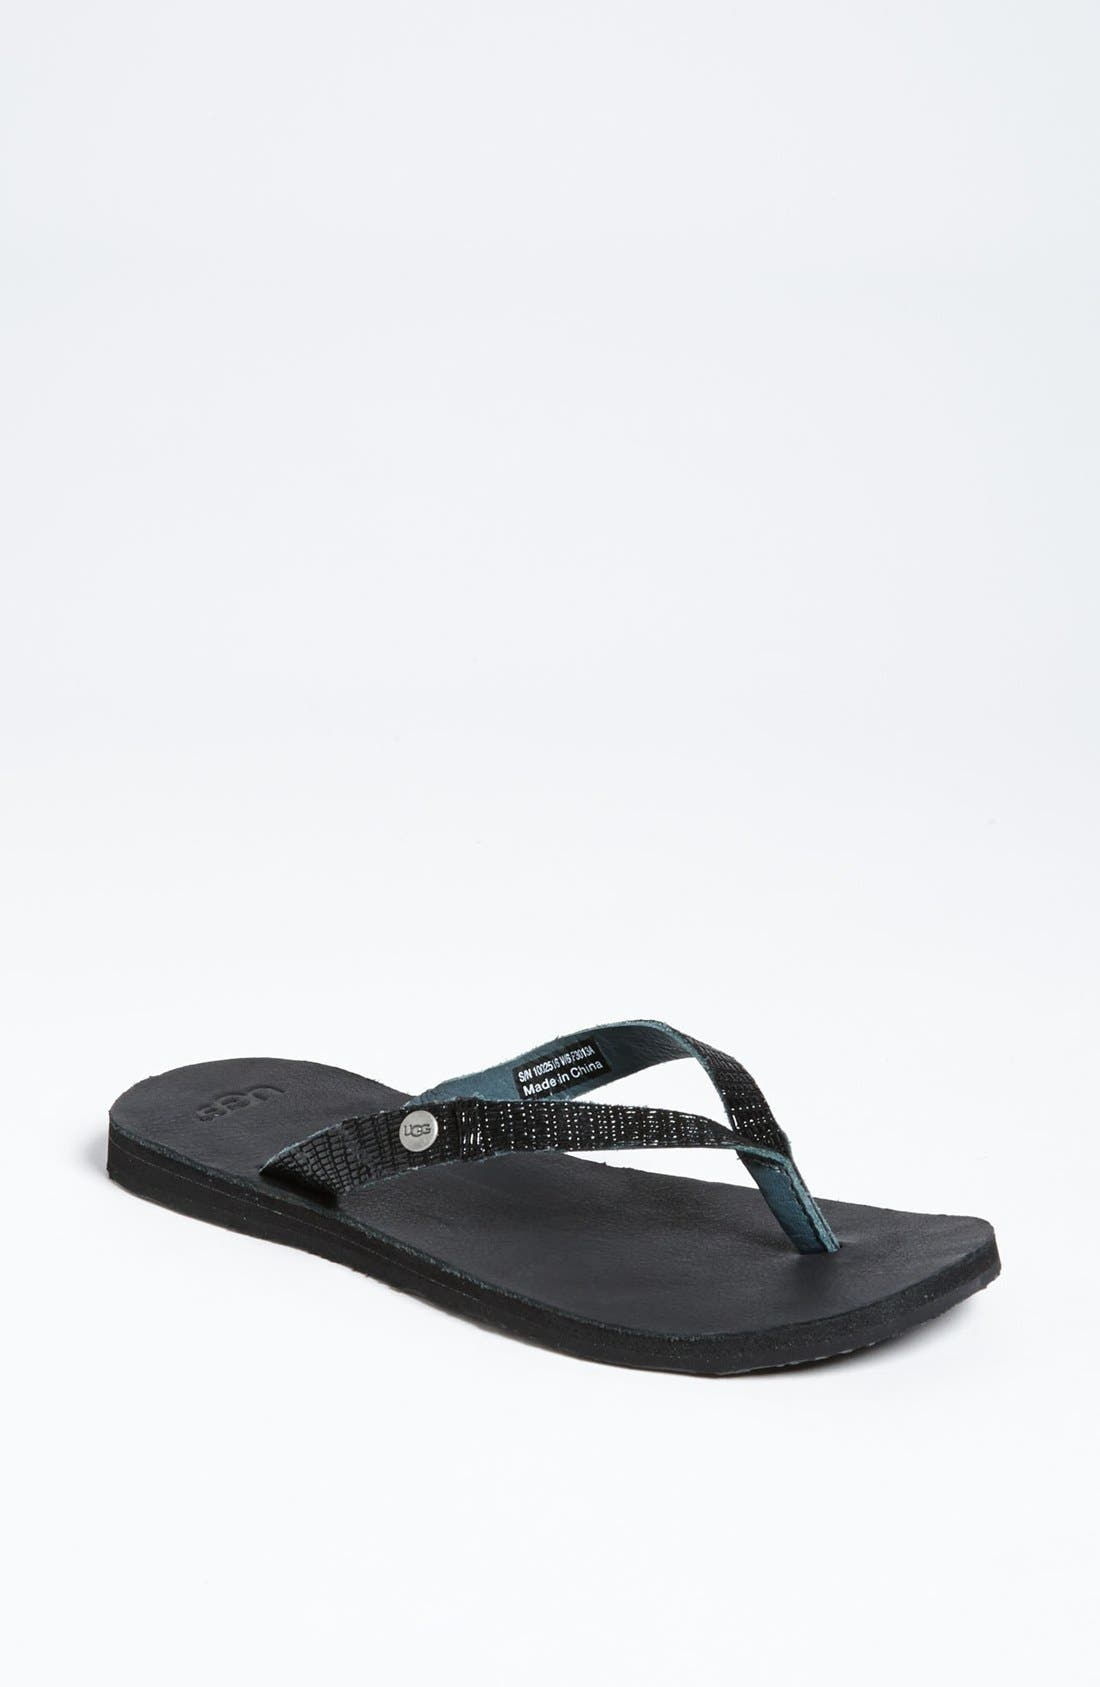 Alternate Image 1 Selected - UGG® Australia 'Ally II' Flip Flop (Women)